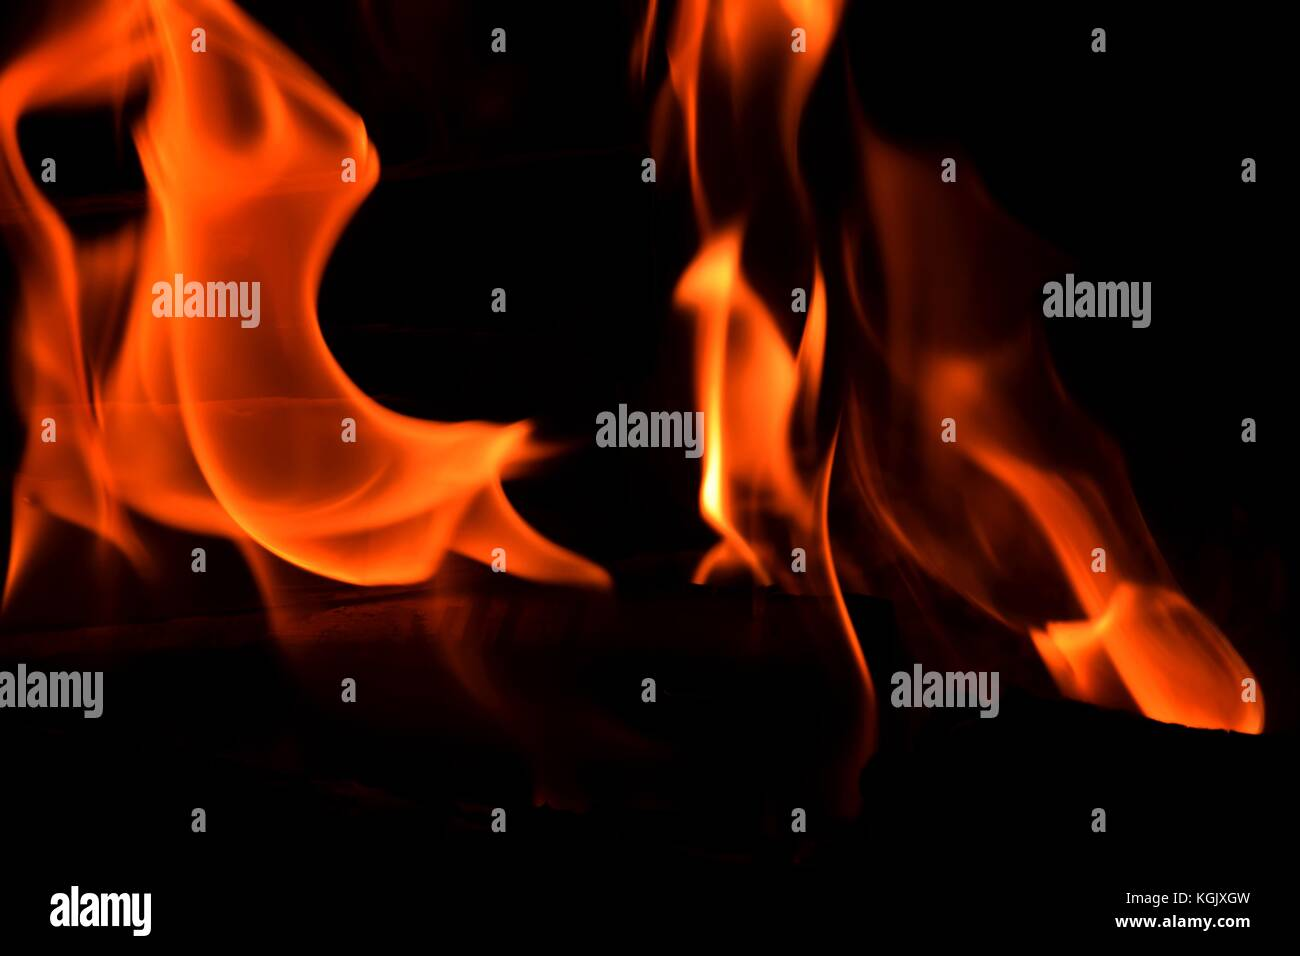 Color Fire Kaminofen Flames Are Burning Red Orange And Yellow Blazing Flames Stock